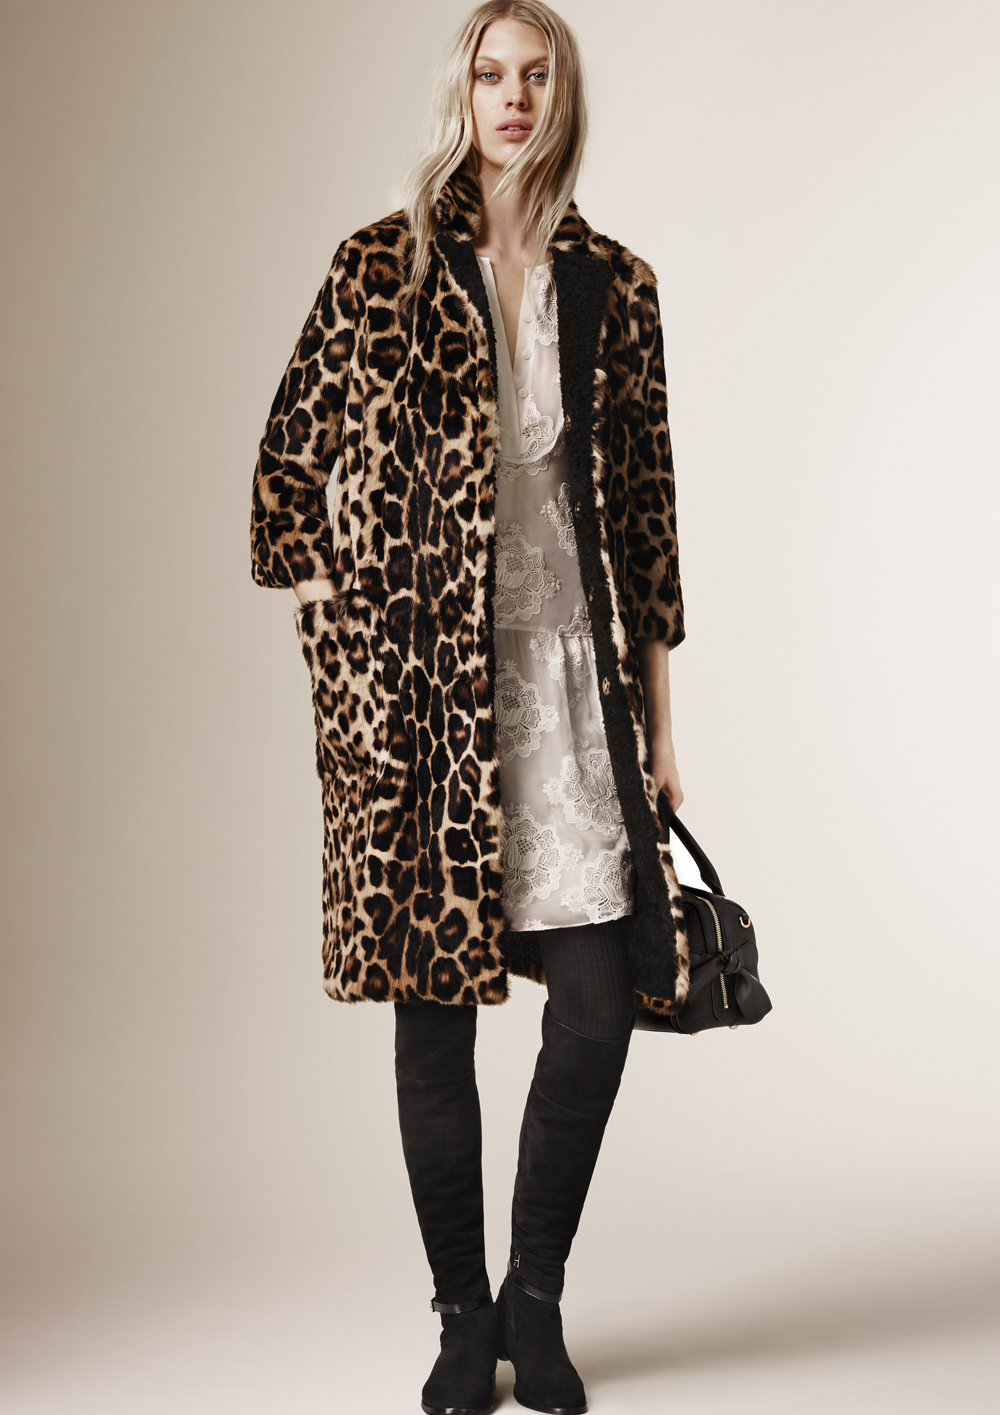 Burberry_Prorsum_Womenswear_Autumn_Winter_2015_Pre-Collection_09